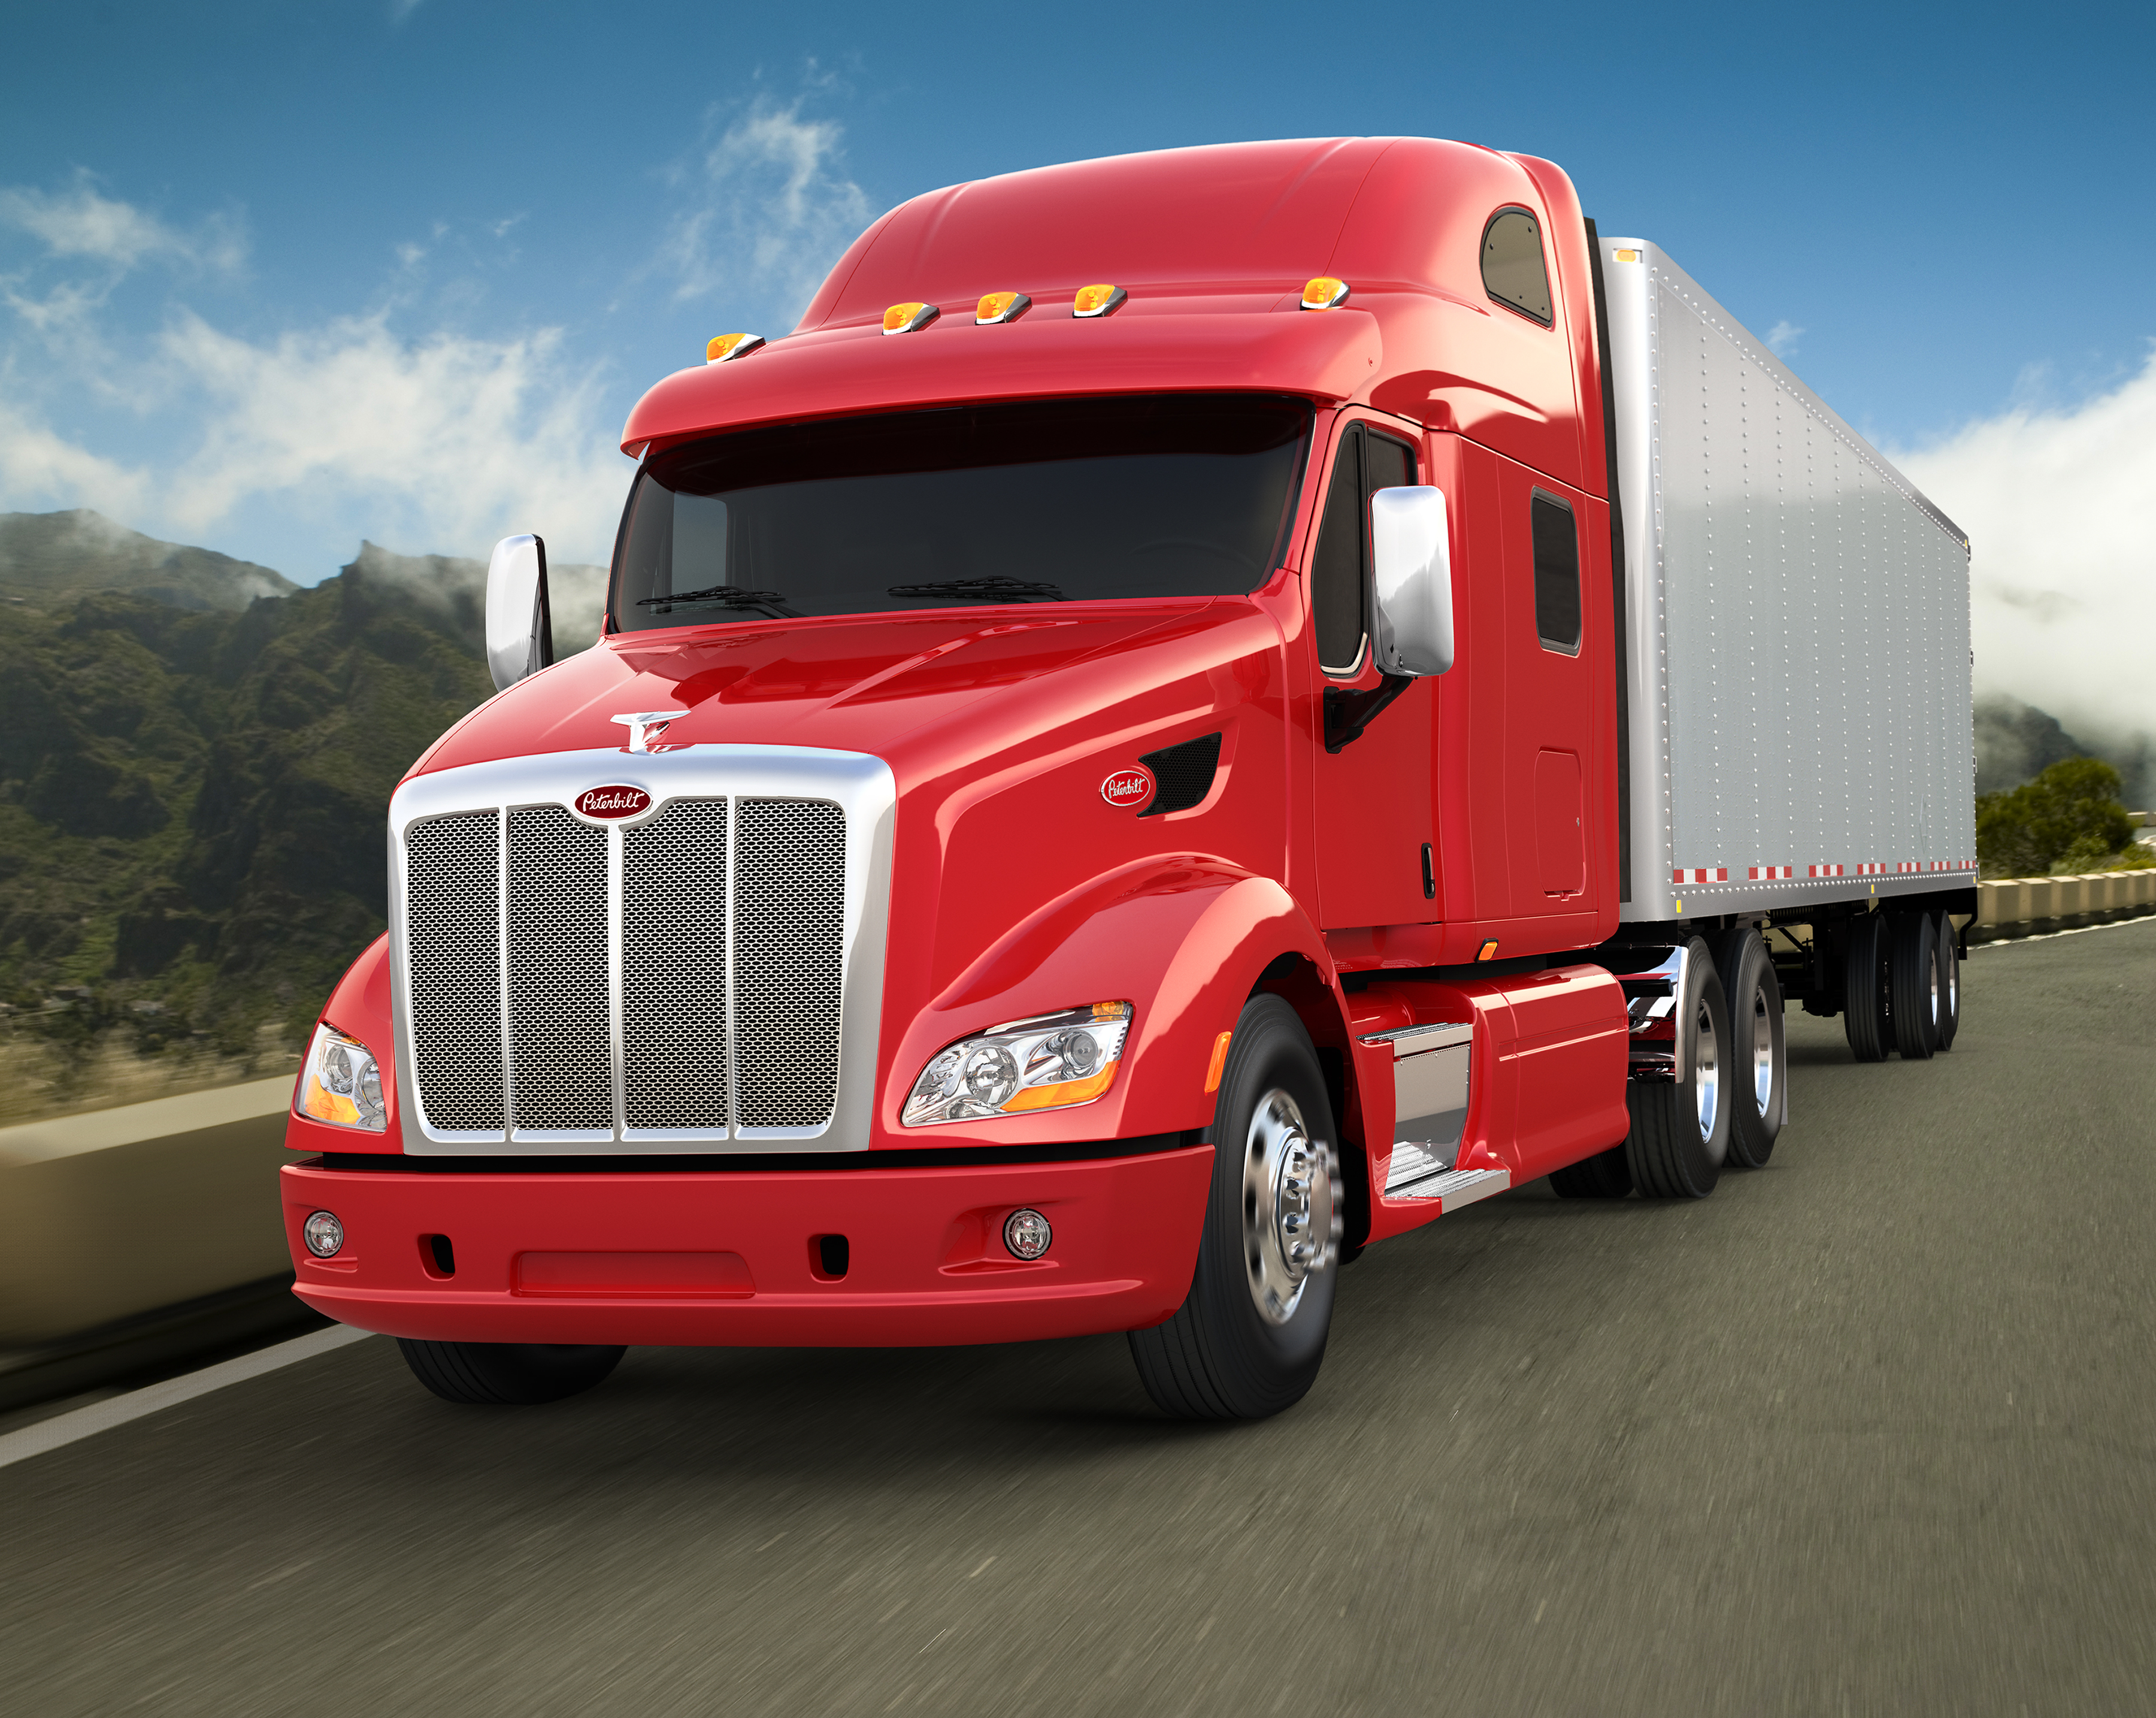 class act research Class 8 truck orders closed out 2017 on a tear according to act research, reaching 37,500 units and topping 30,000 orders the third consecutive month december order activity jumped 15 percent.